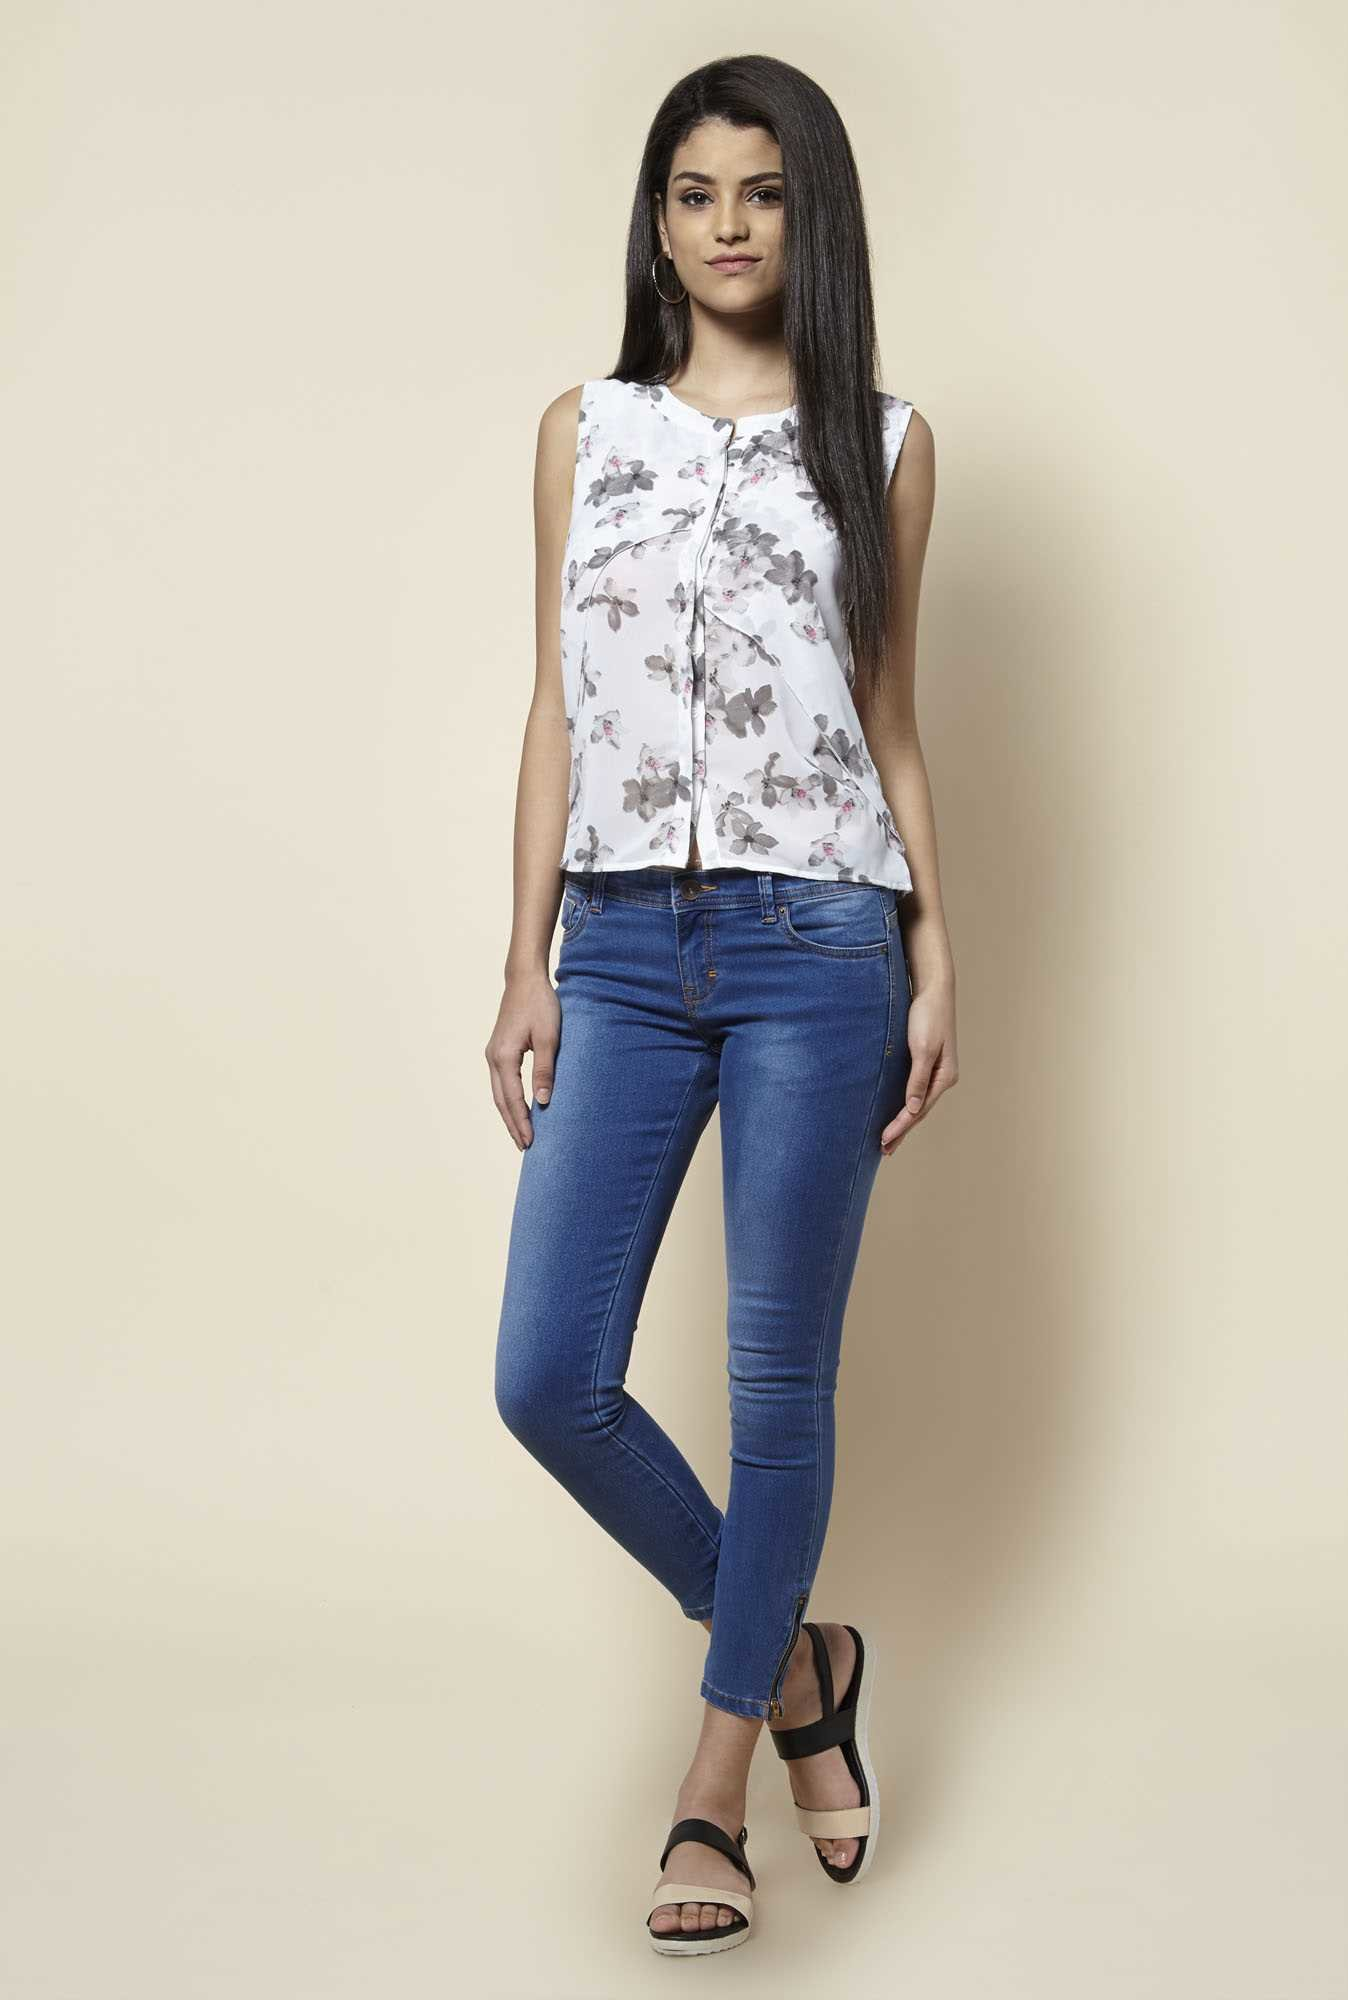 Zudio Off White Floral Print Blouse